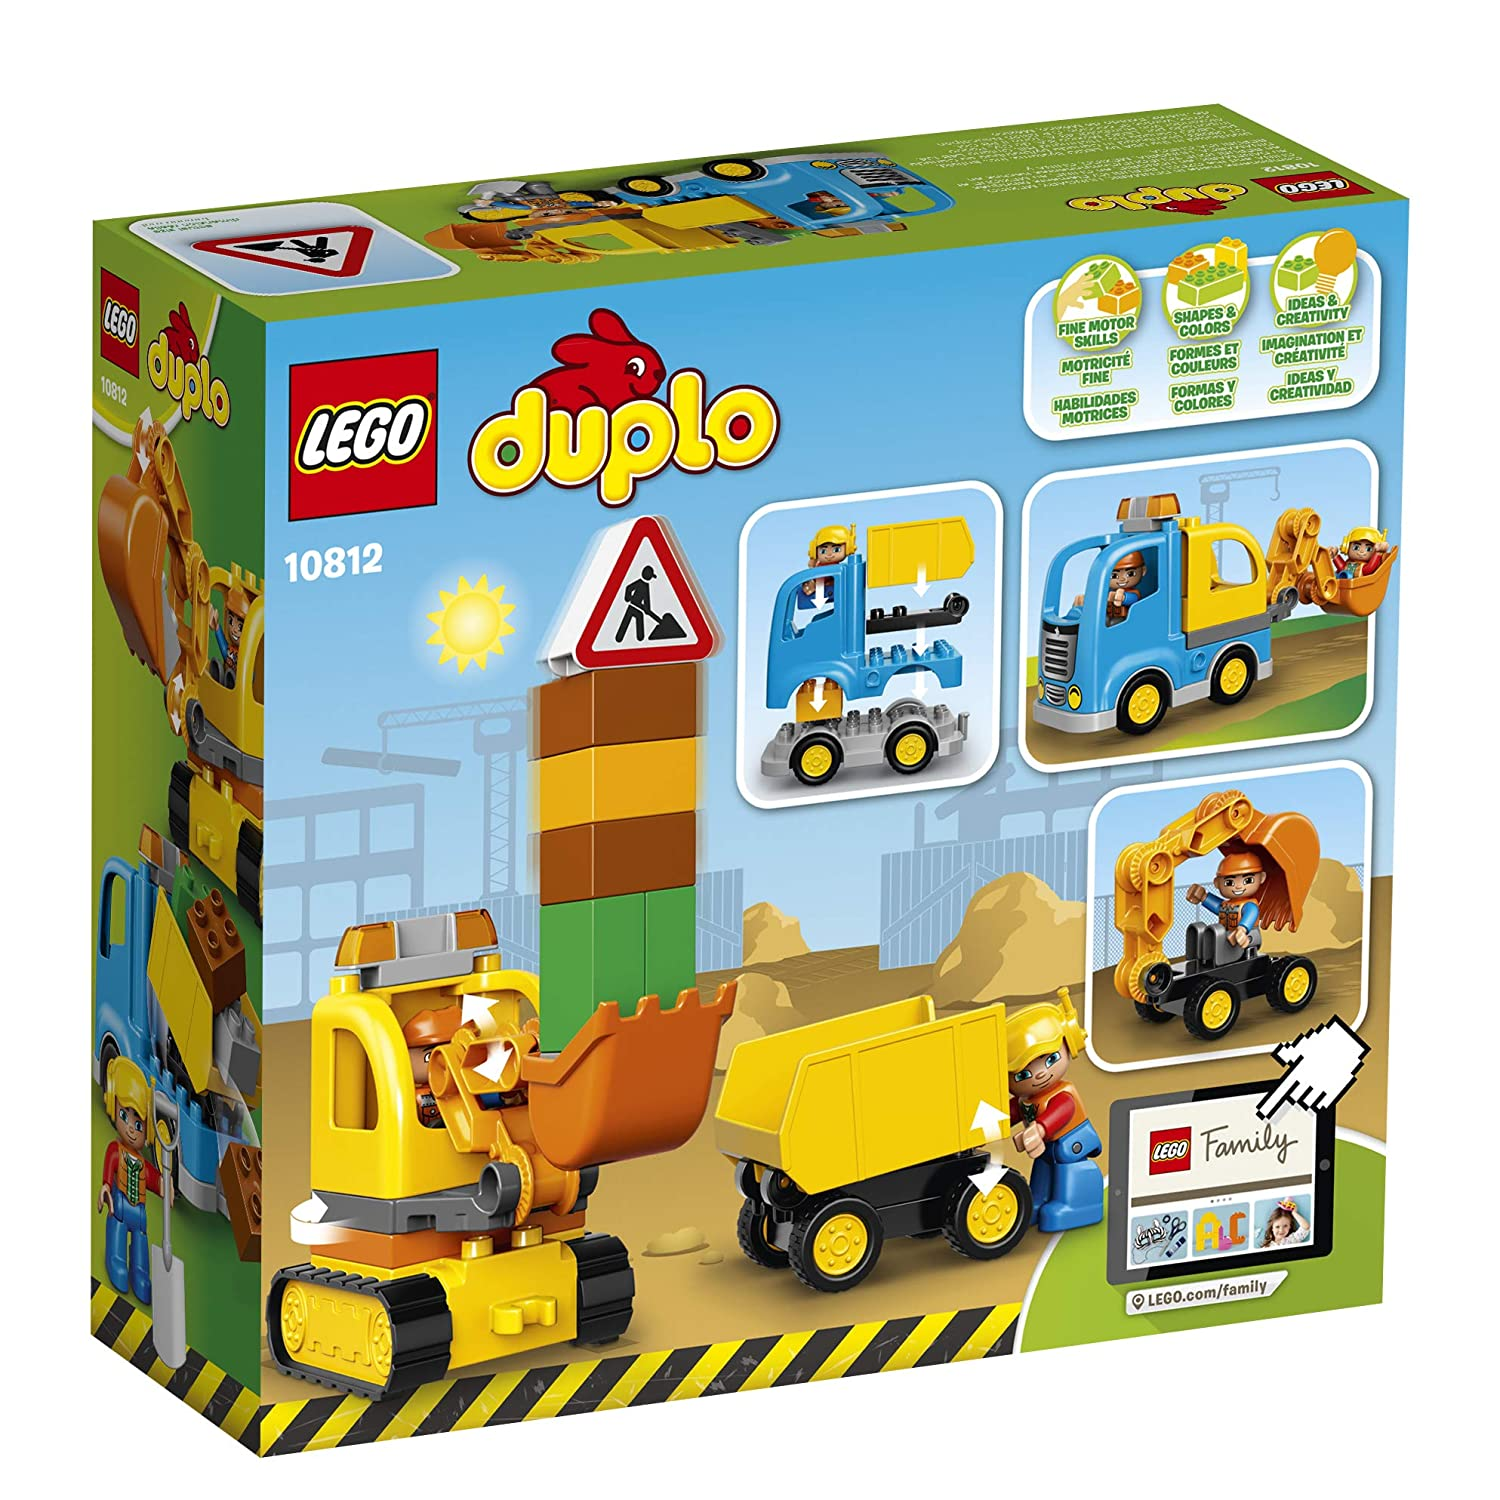 LEGO DUPLO Town Truck /& Tracked Excavator 10812 Dump Truck and Excavator Kids Construction Toy with DUPLO Construction Worker Figures 26 pieces